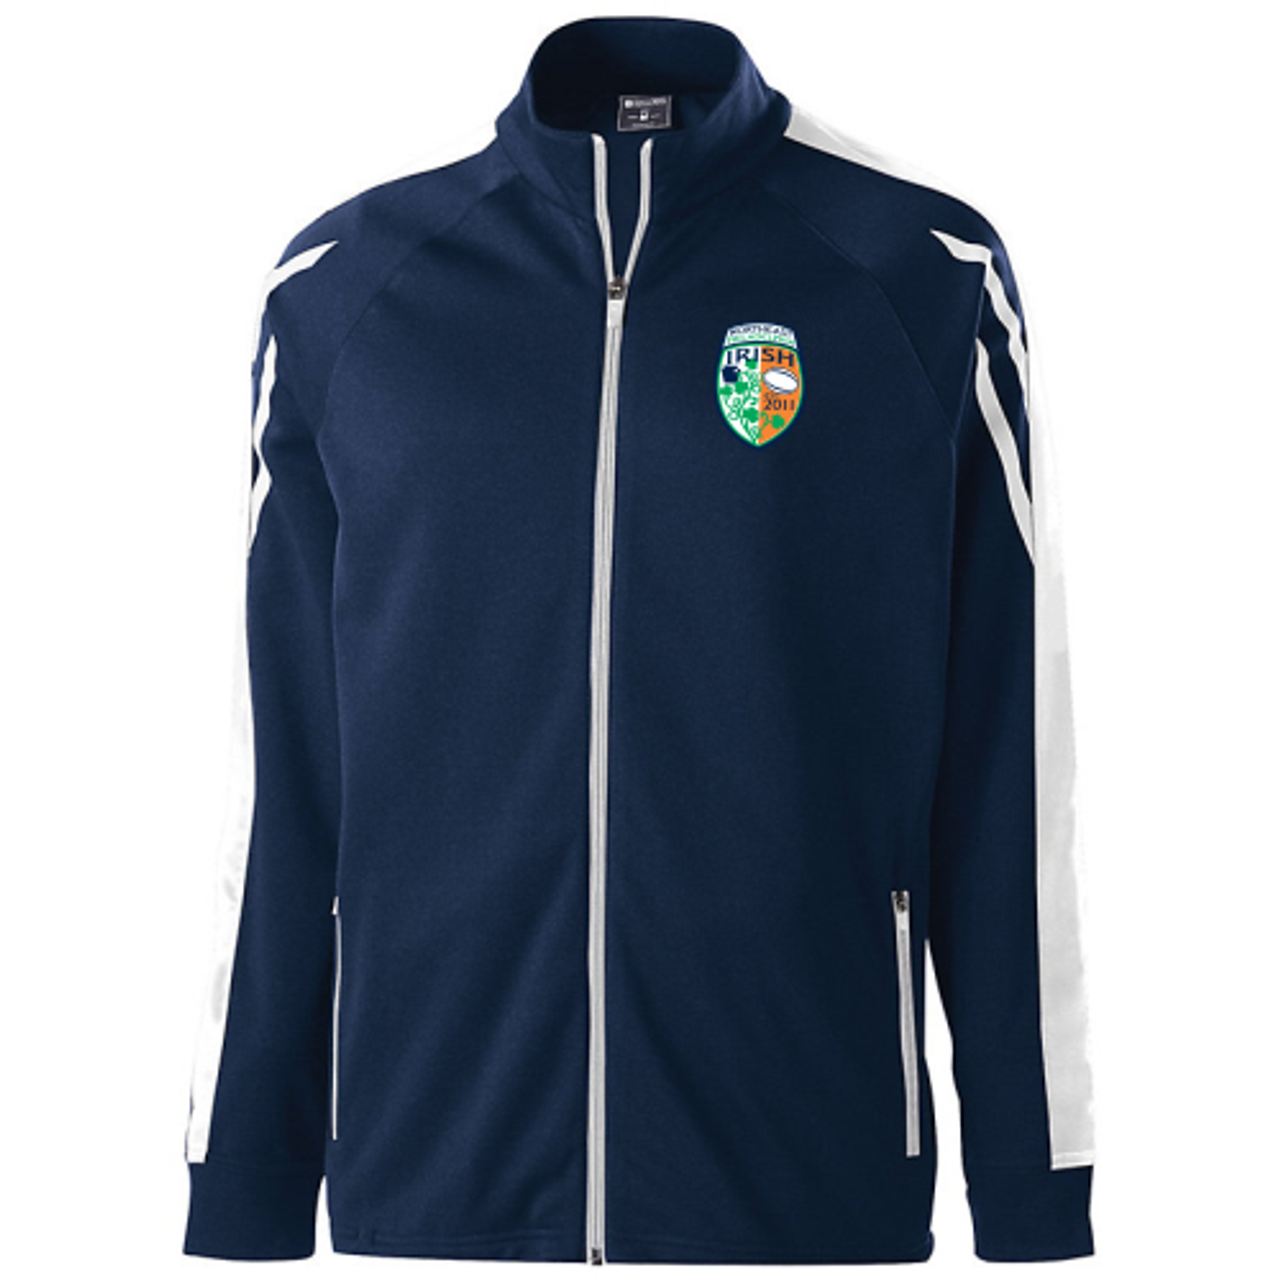 NEP Irish Fleece Full-Zip Jacket